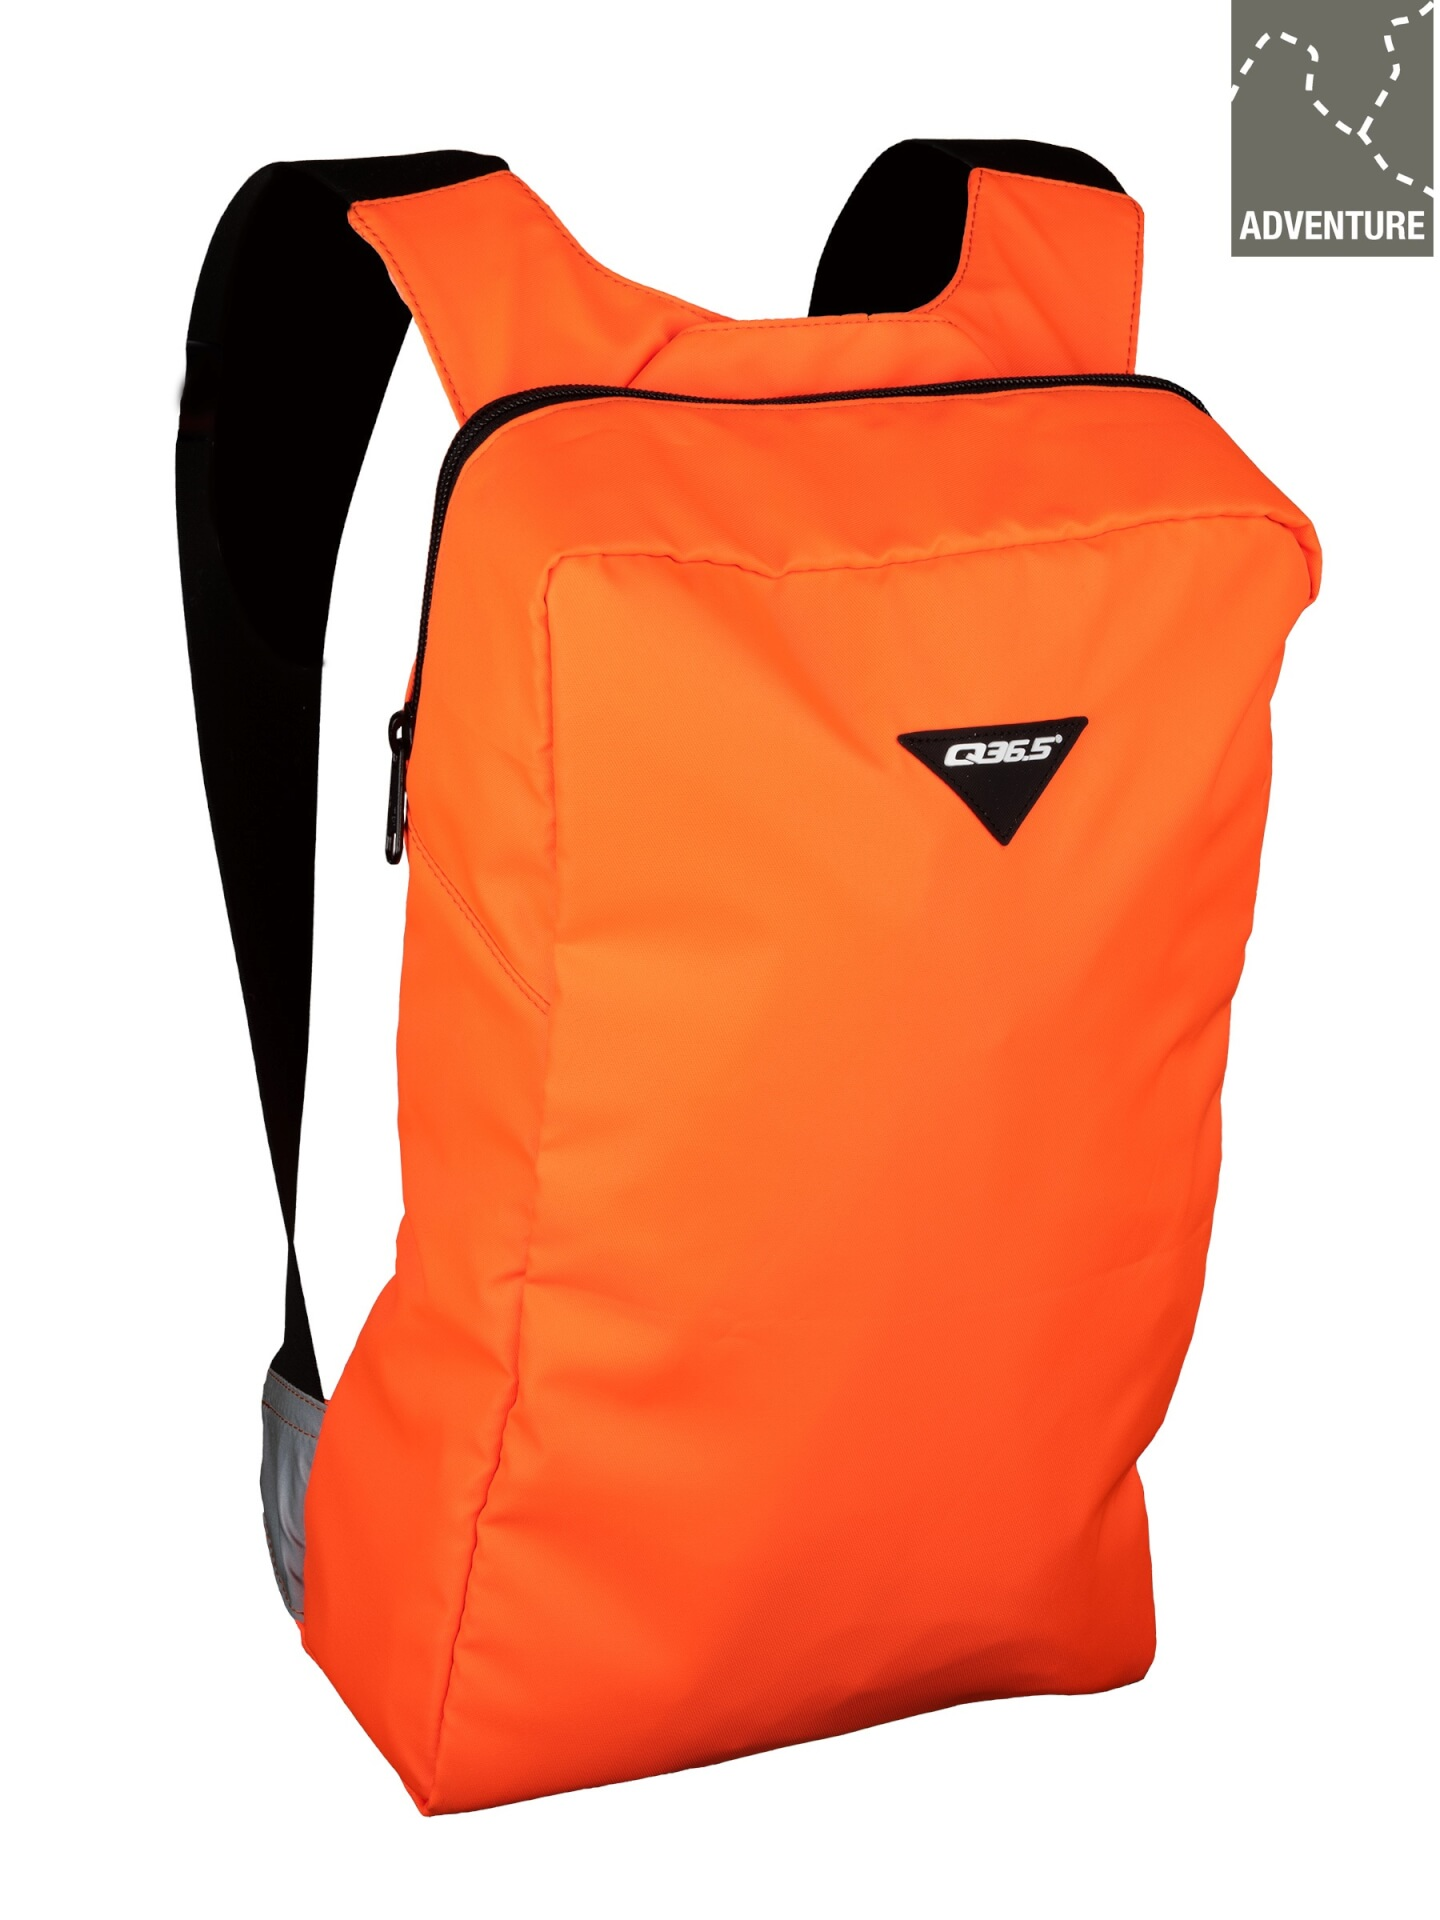 adventure riding backpack